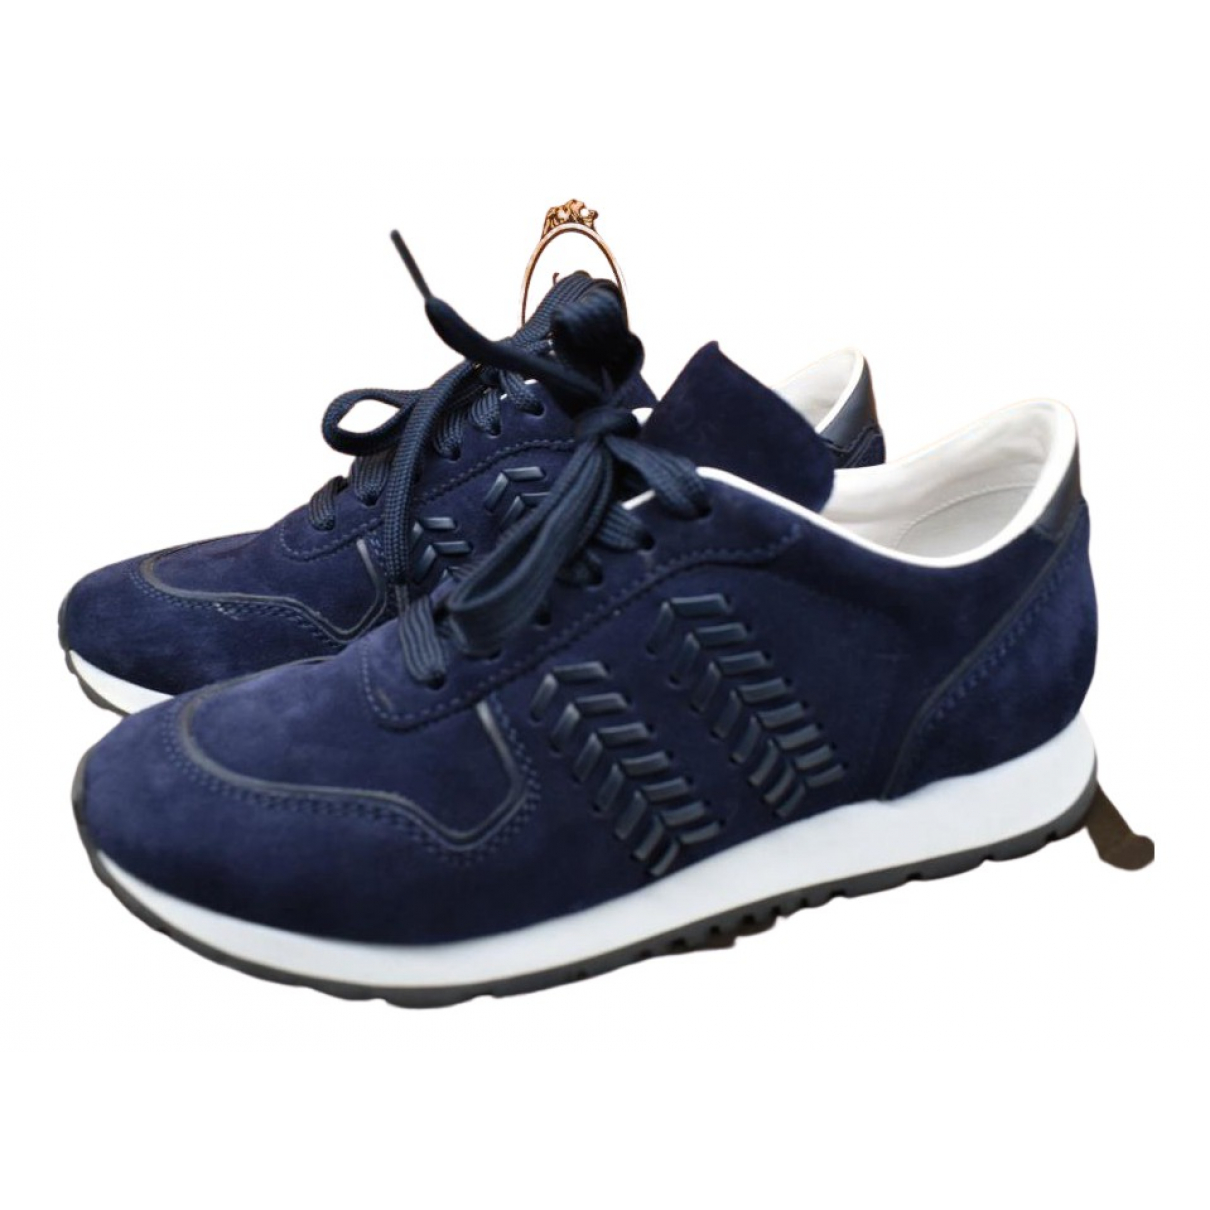 Tod's N Navy Suede Trainers for Women 38 EU